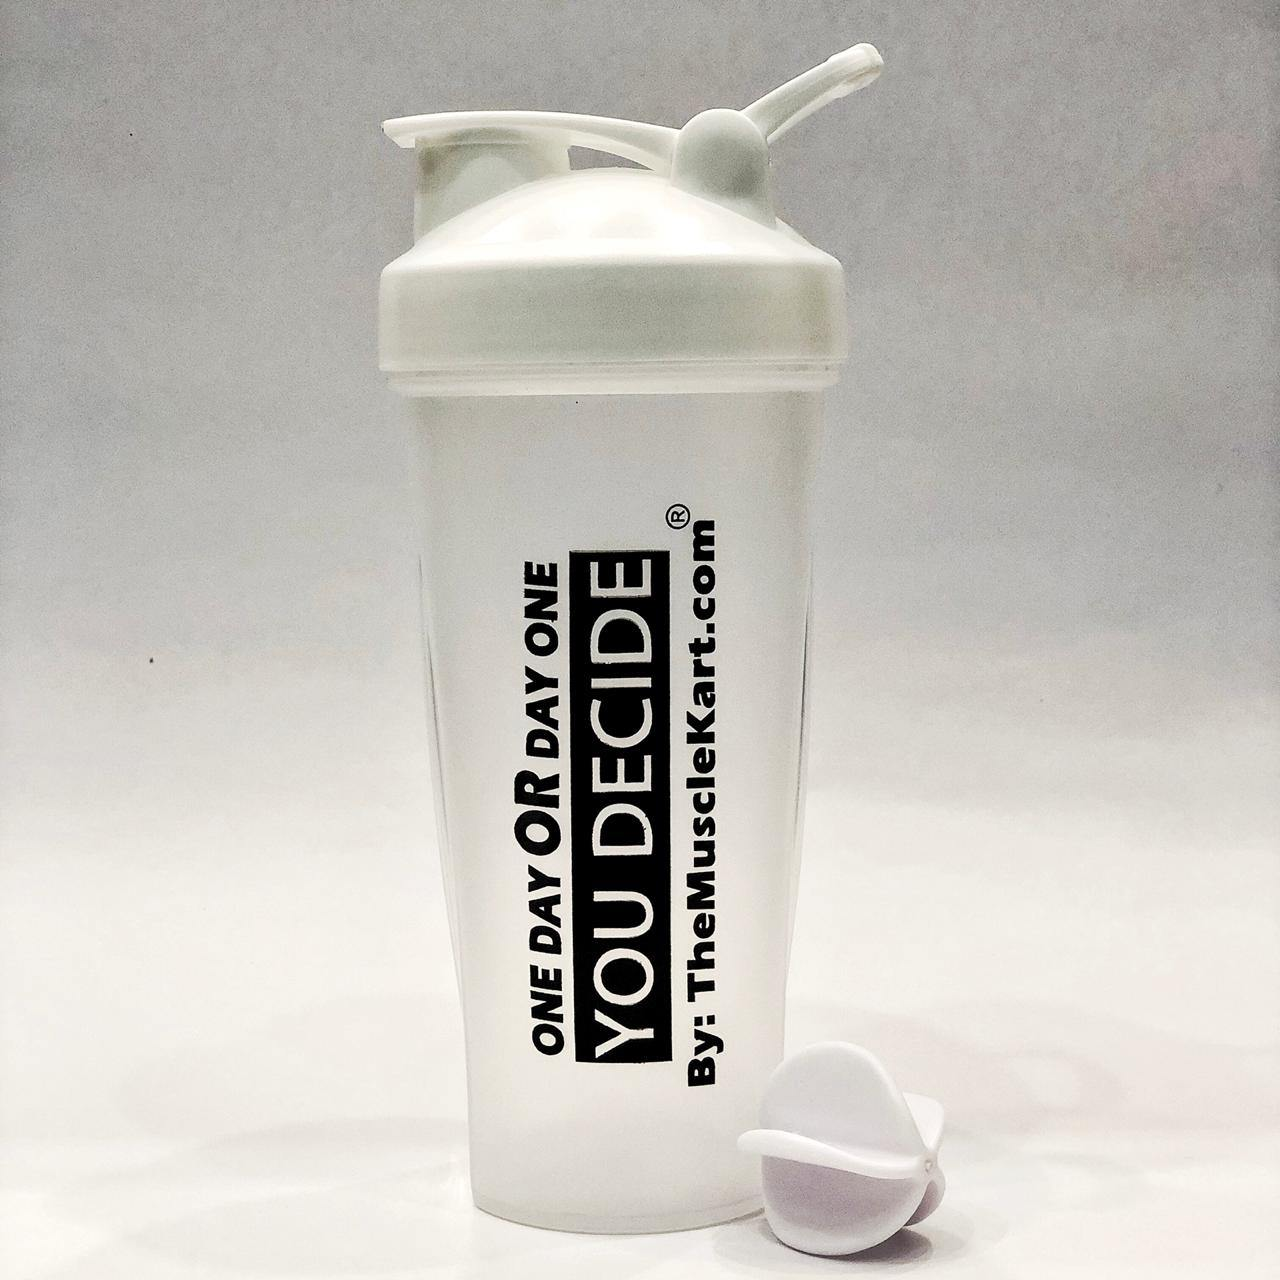 Viver White DAY ONE Protein Workout / Gym Shaker - The Muscle Kart.com